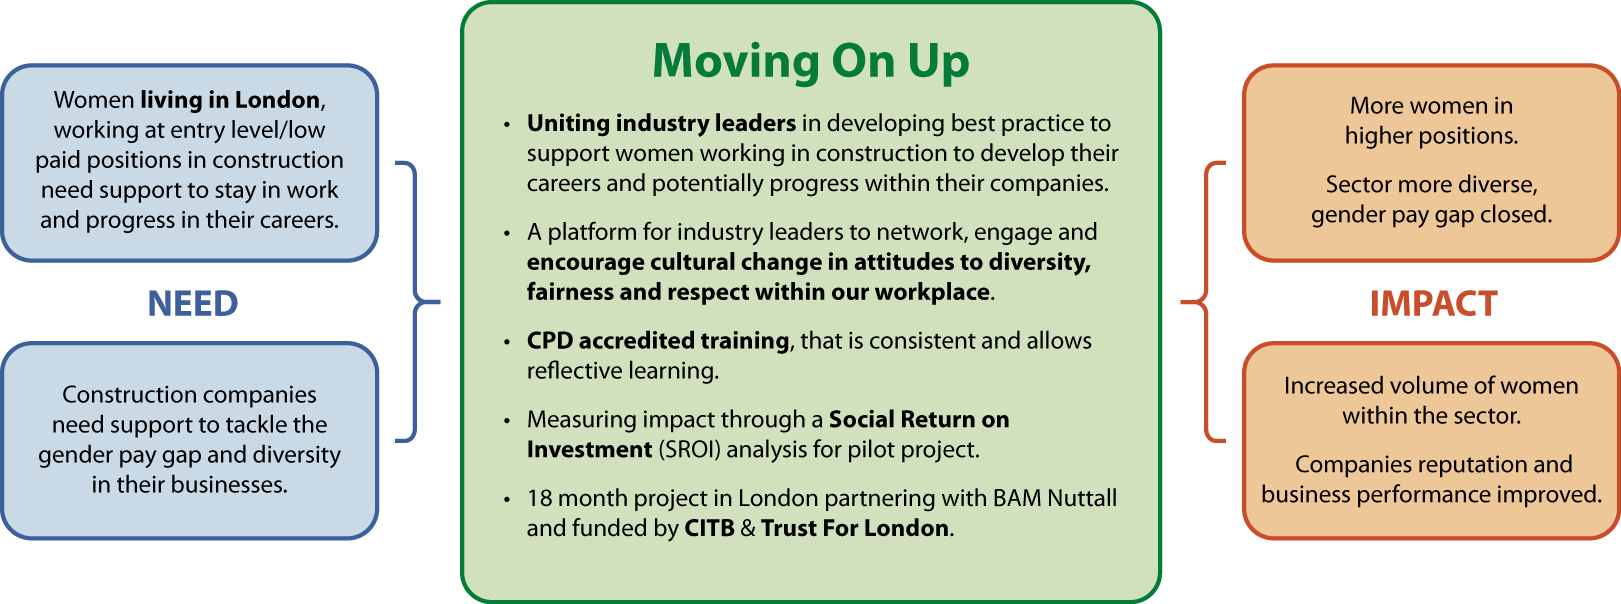 Moving On Up graphic 1